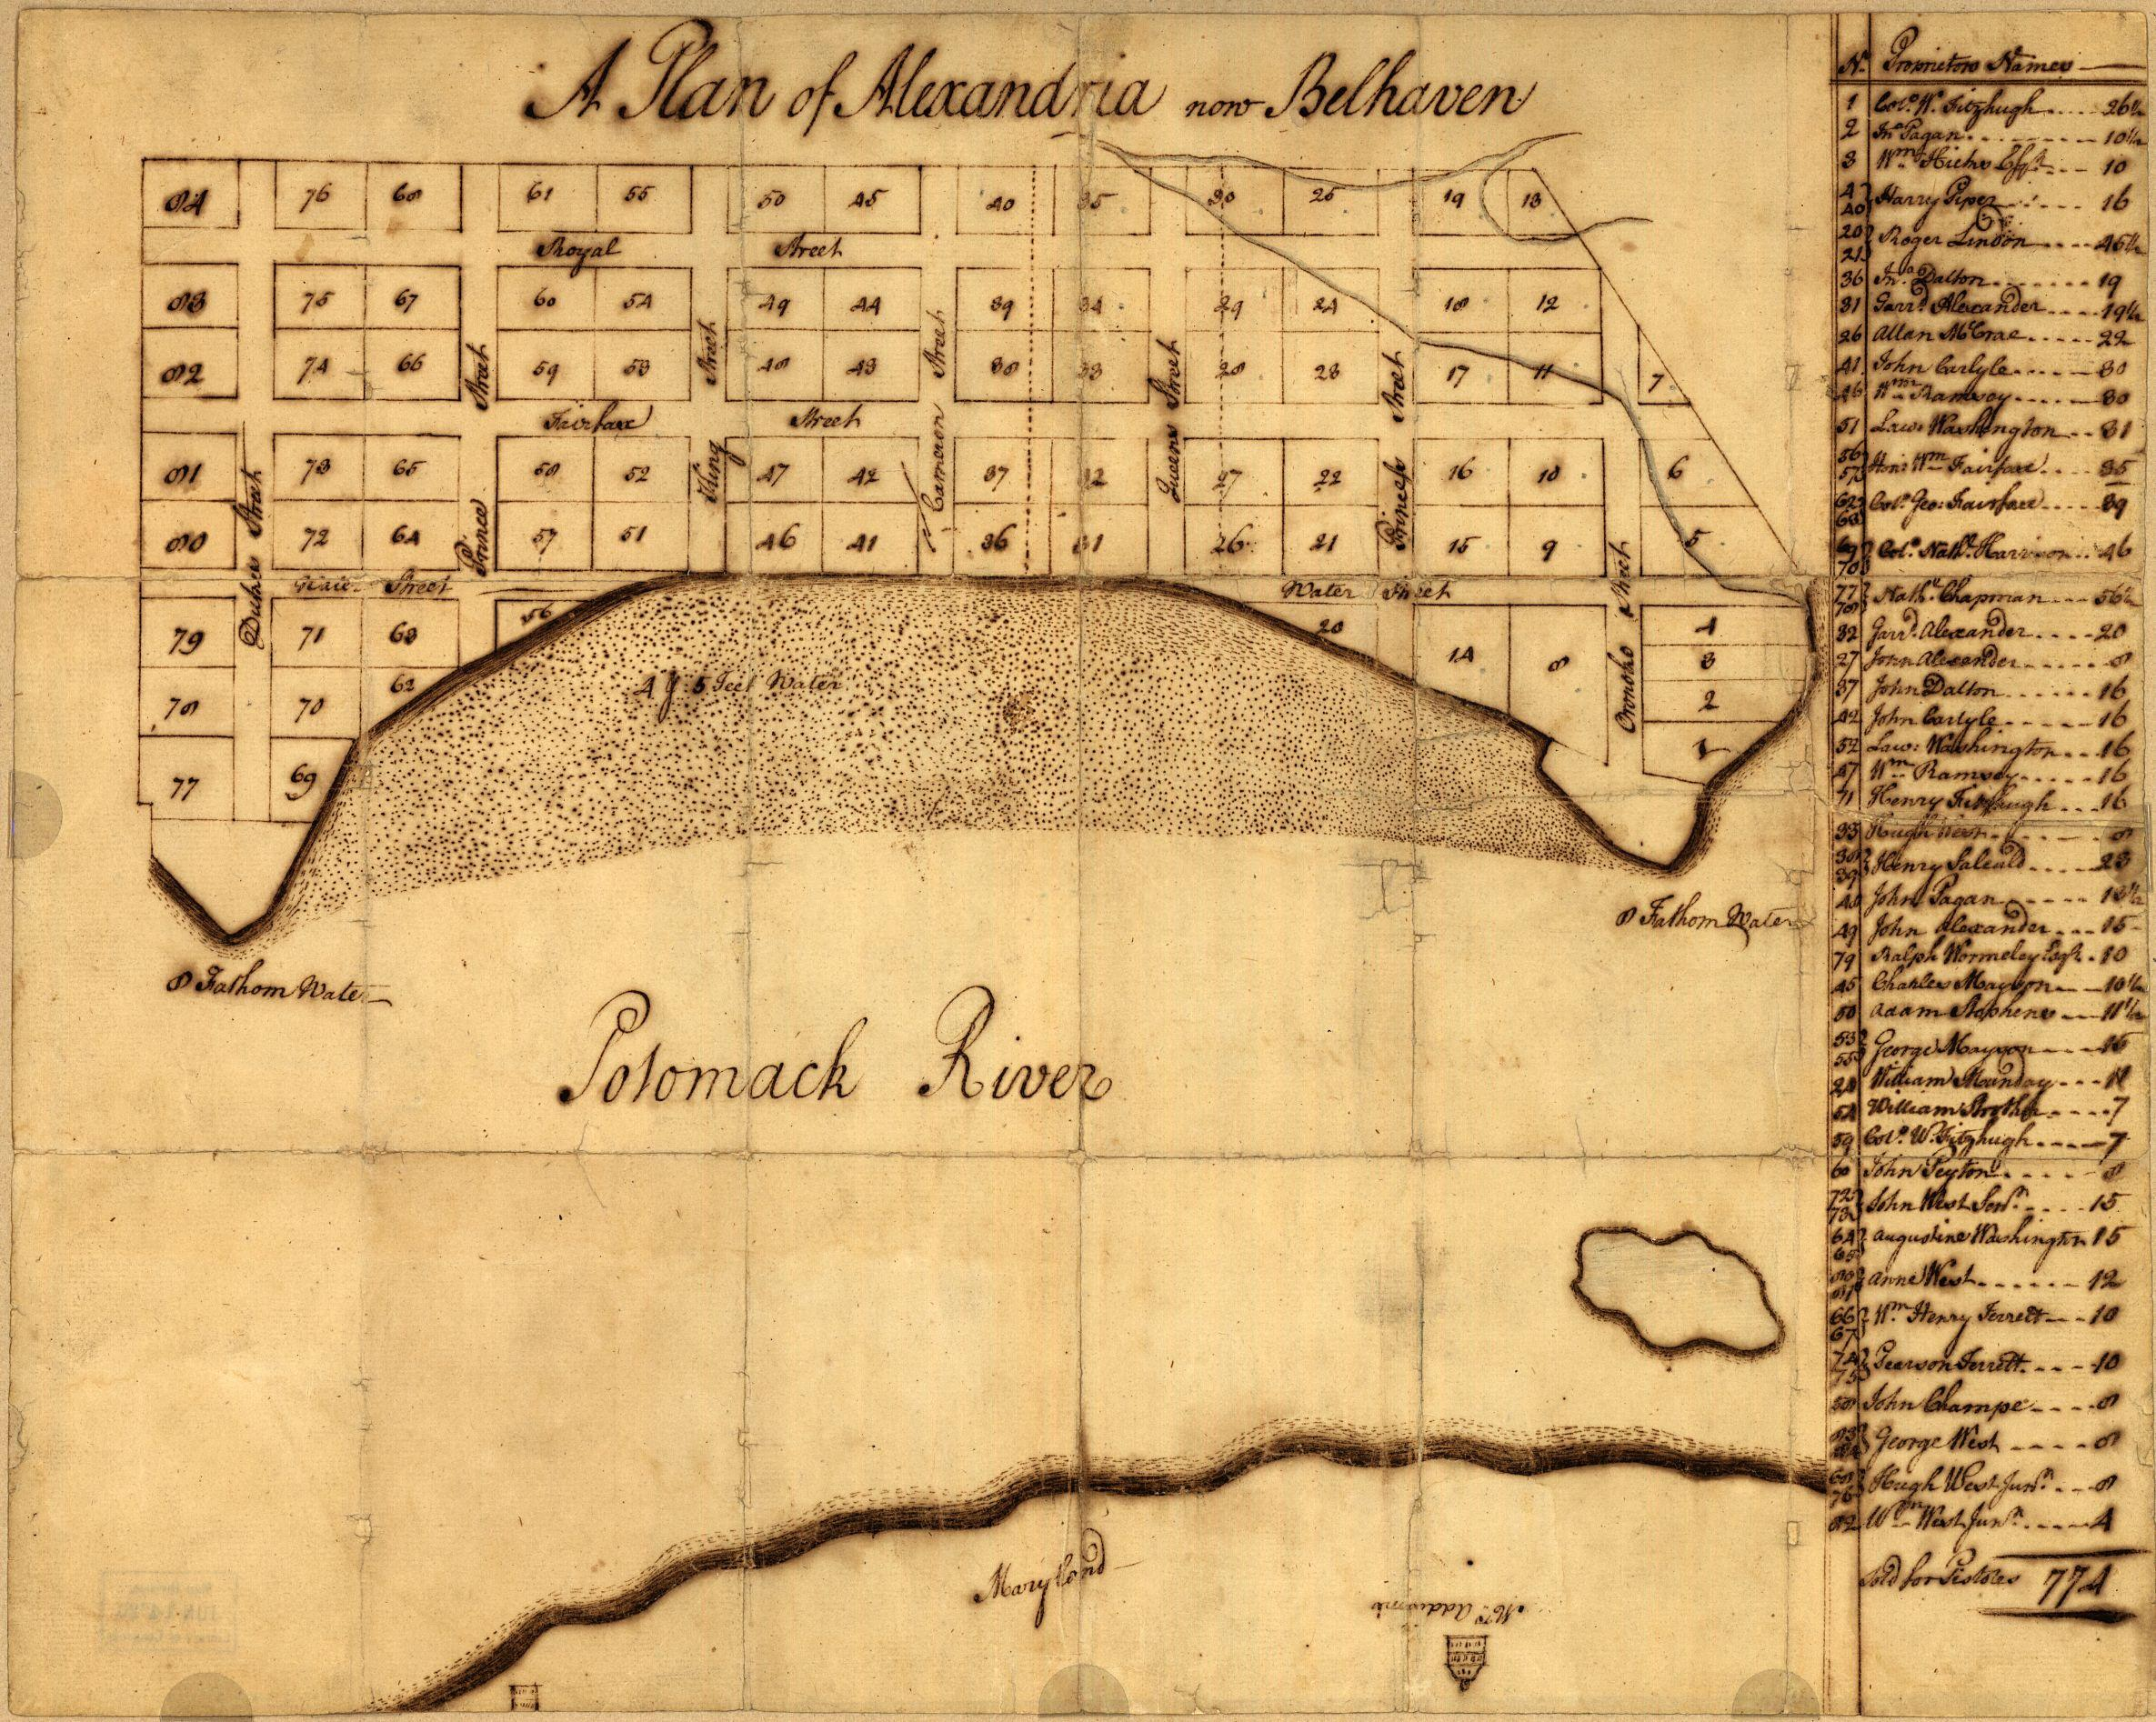 Early map of Alexandria drawn by George Washington. - A Plan of Alexandria, now Belhaven, By George Washington, ca. 1749. [G3884.A3G46 1749 .W3]. Courtesy Library of Congress, Washington, D.C.